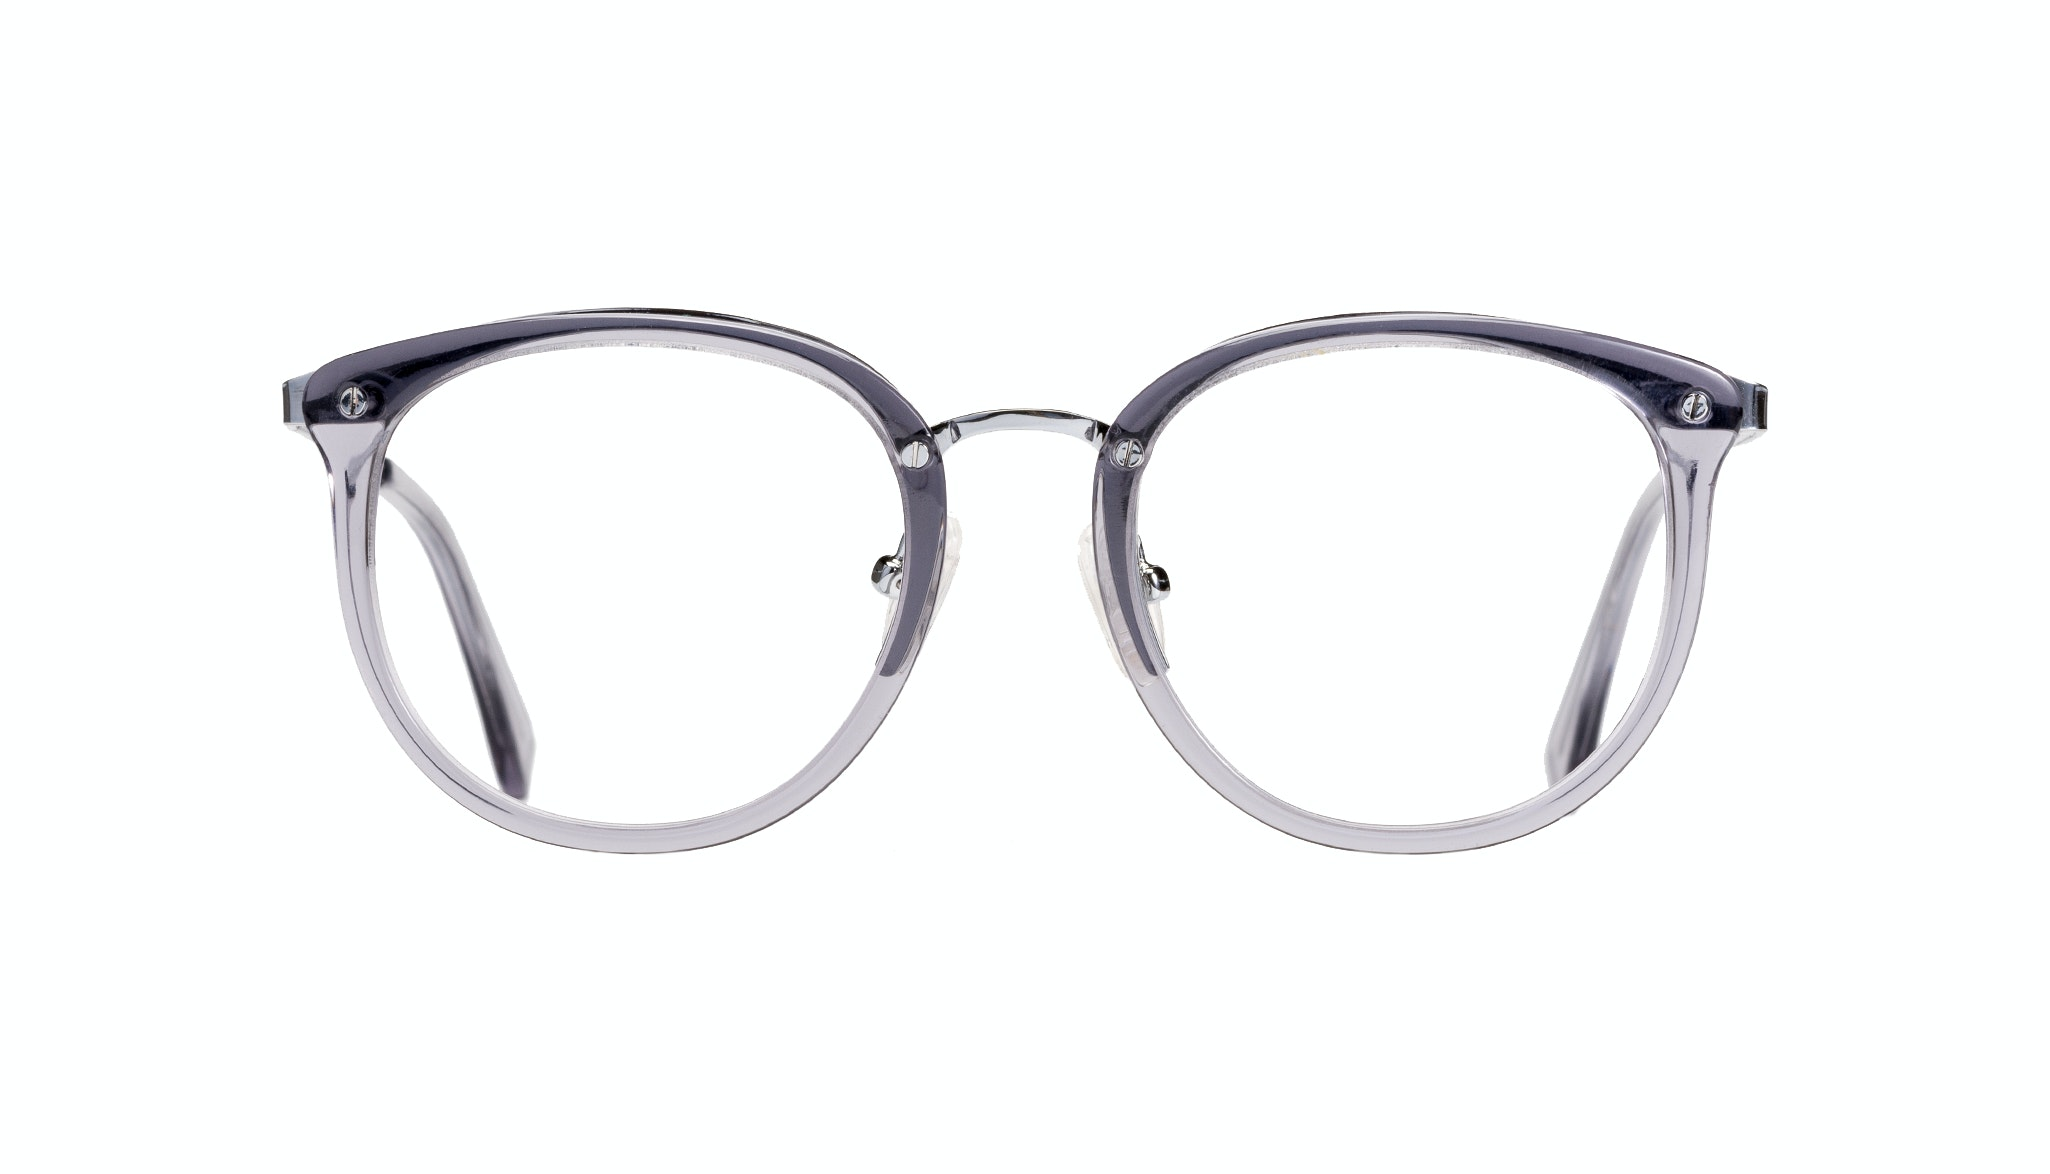 Affordable Fashion Glasses Cat Eye Round Eyeglasses Women Amaze Petite Cloud